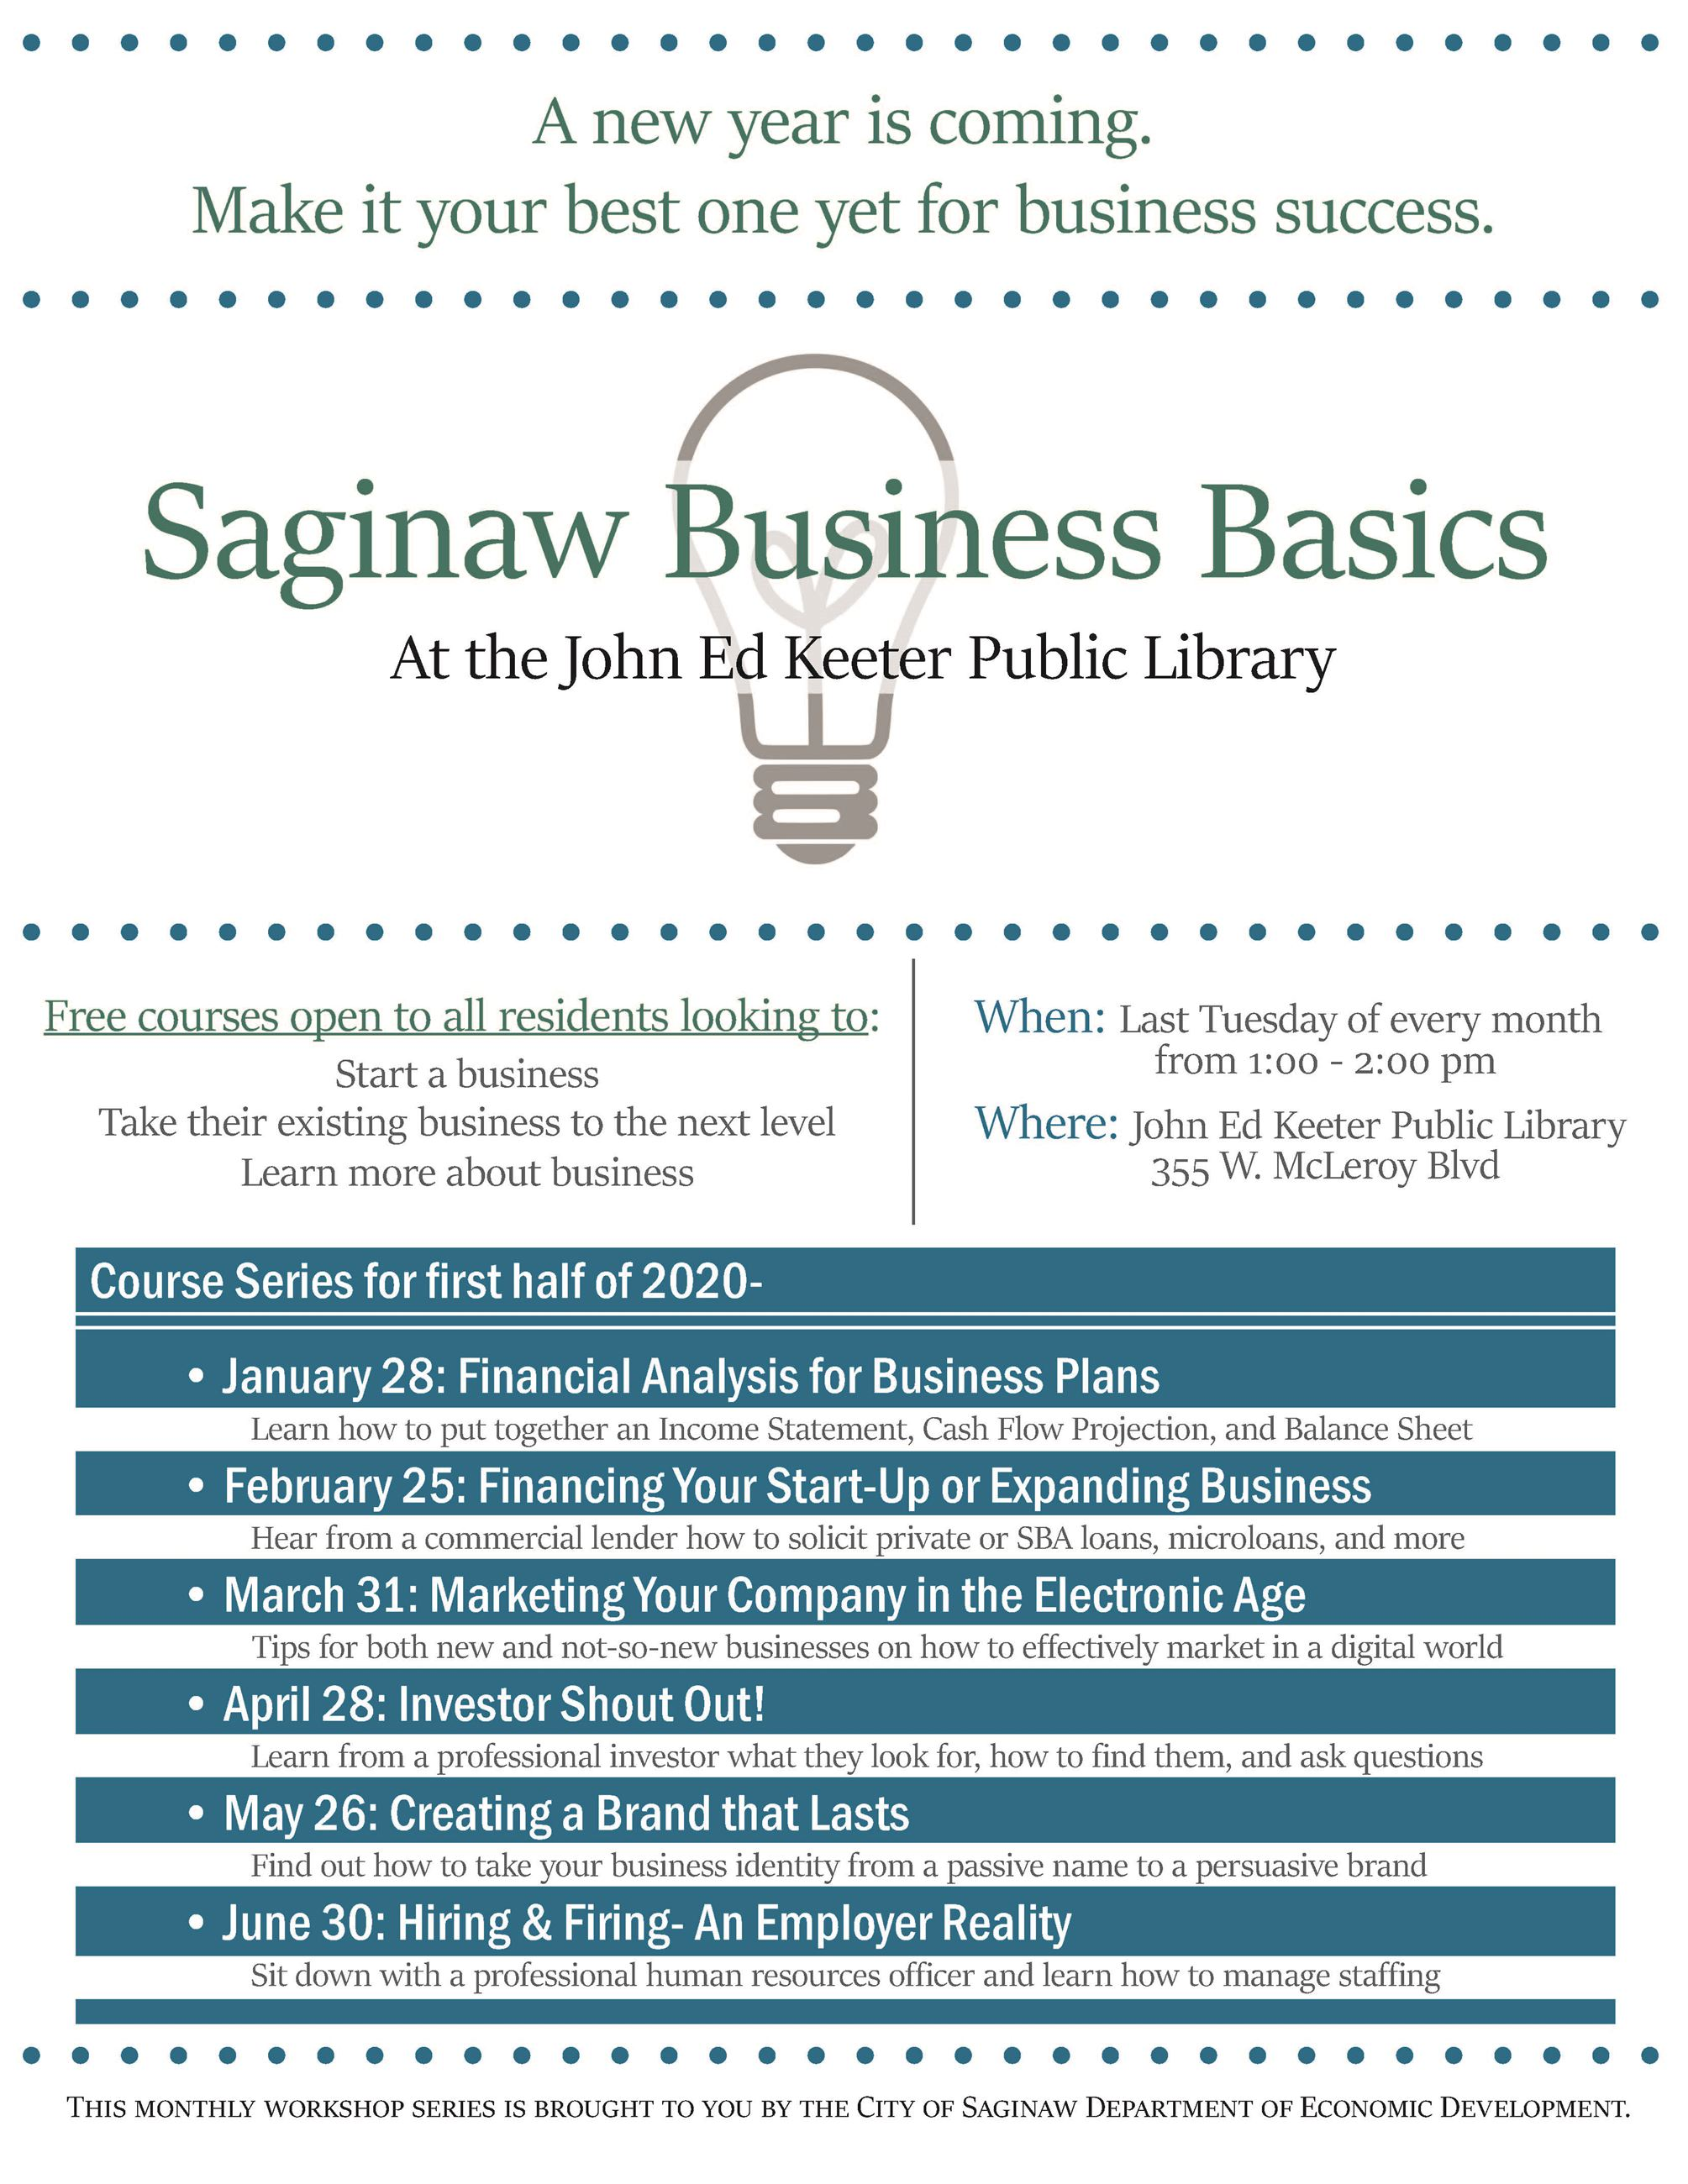 Saginaw Business Basics First Half of 2020